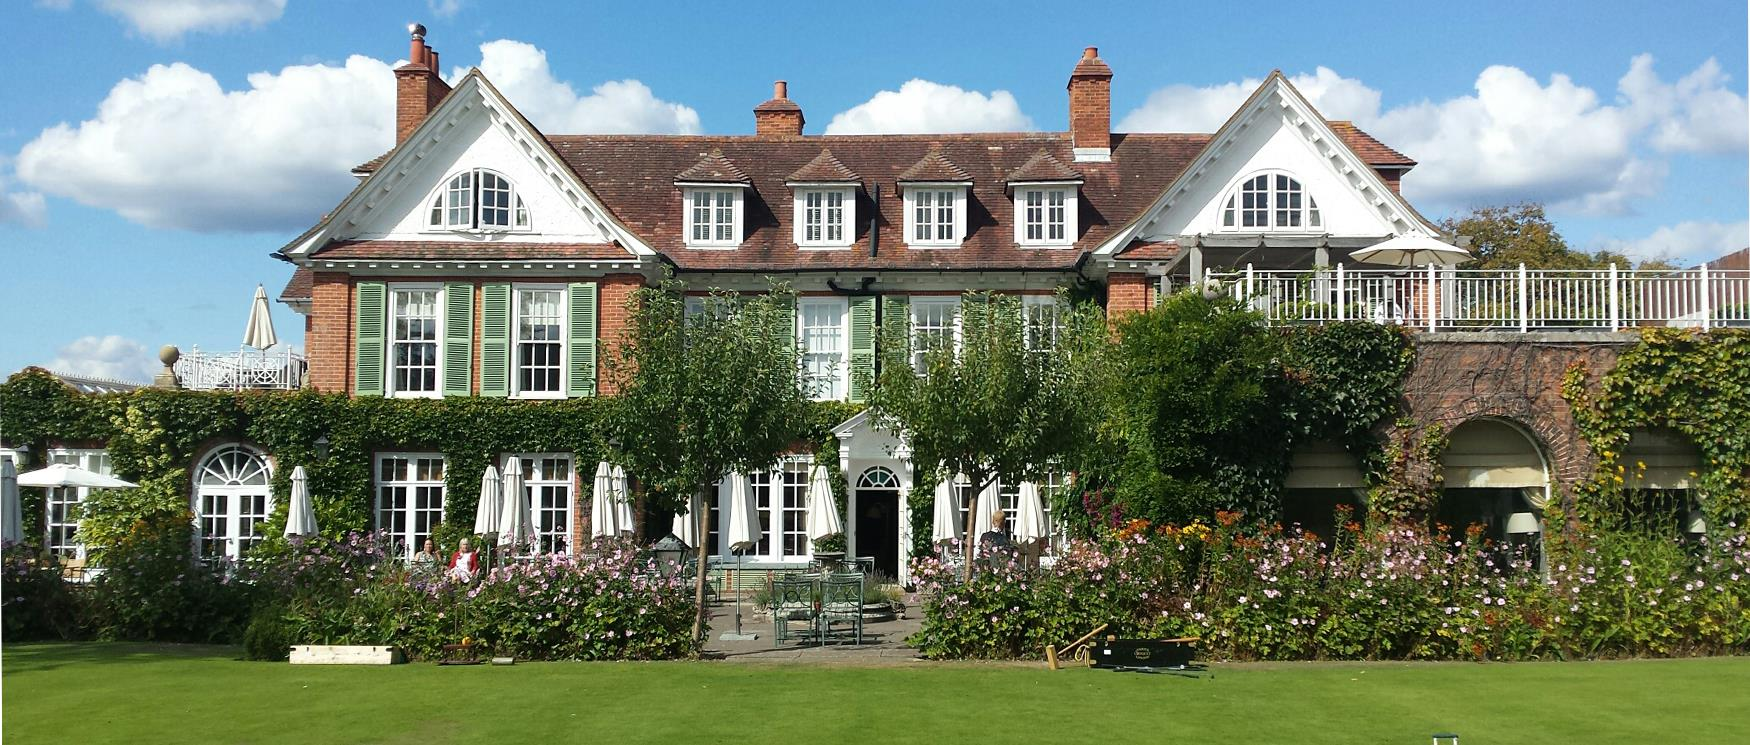 Chewton Glen Hotel and Spa